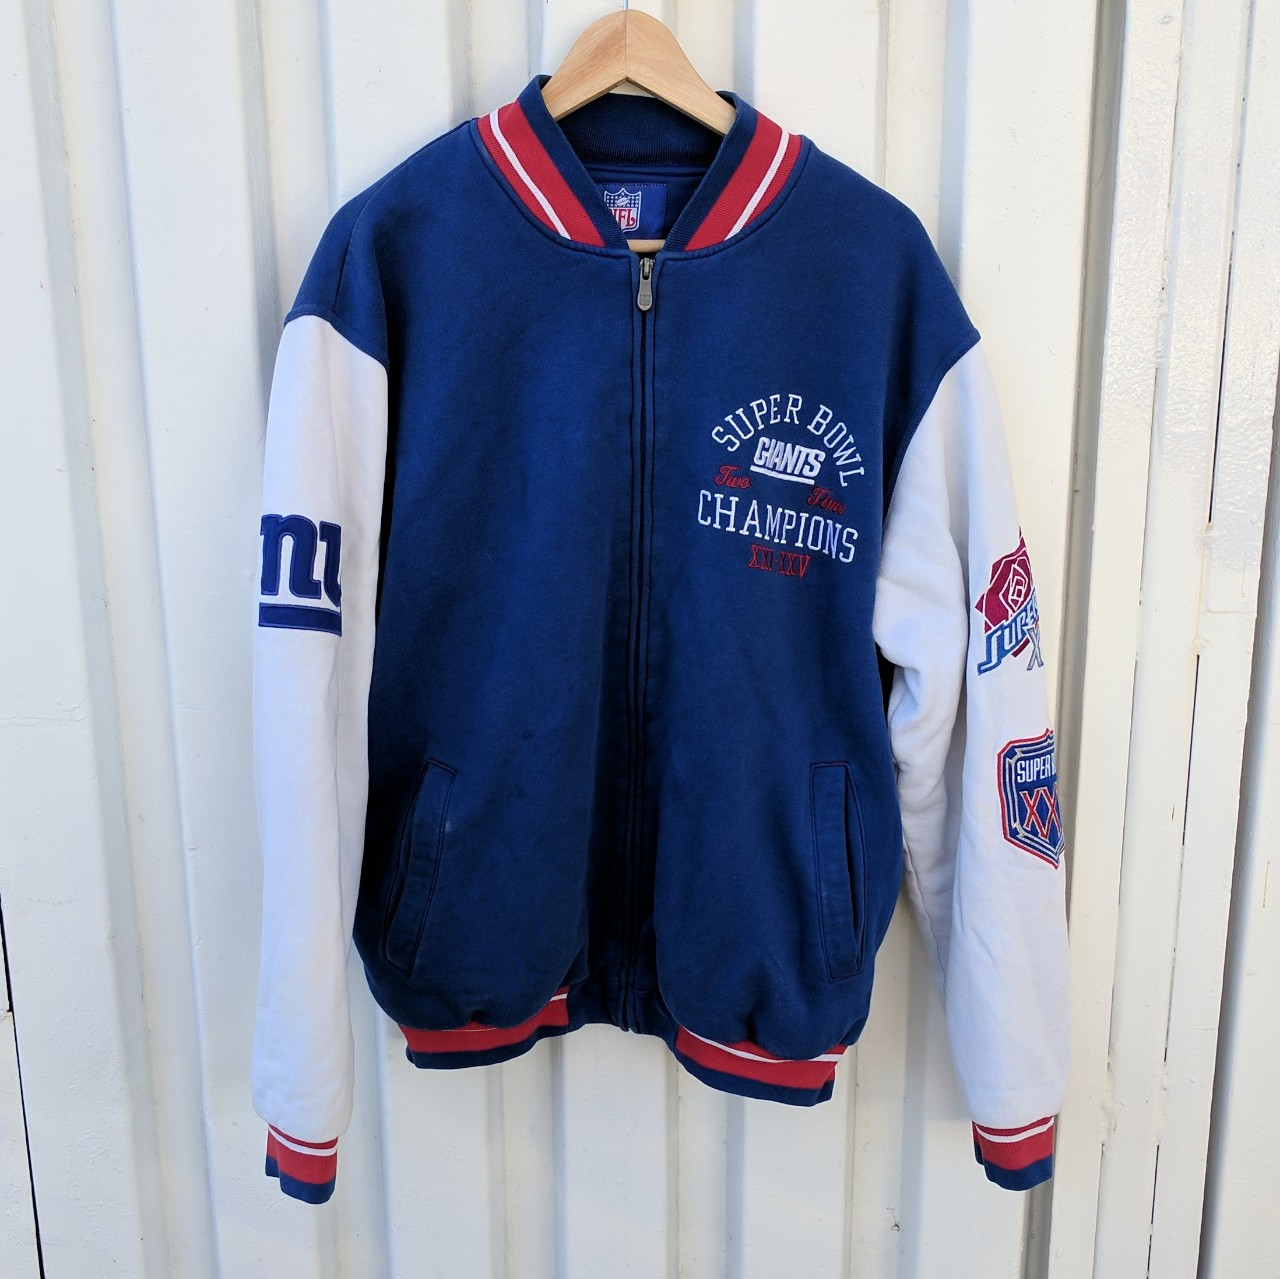 new style 0c1aa 16a6c New York Giants Super Bowl letterman jacket Size... - Depop